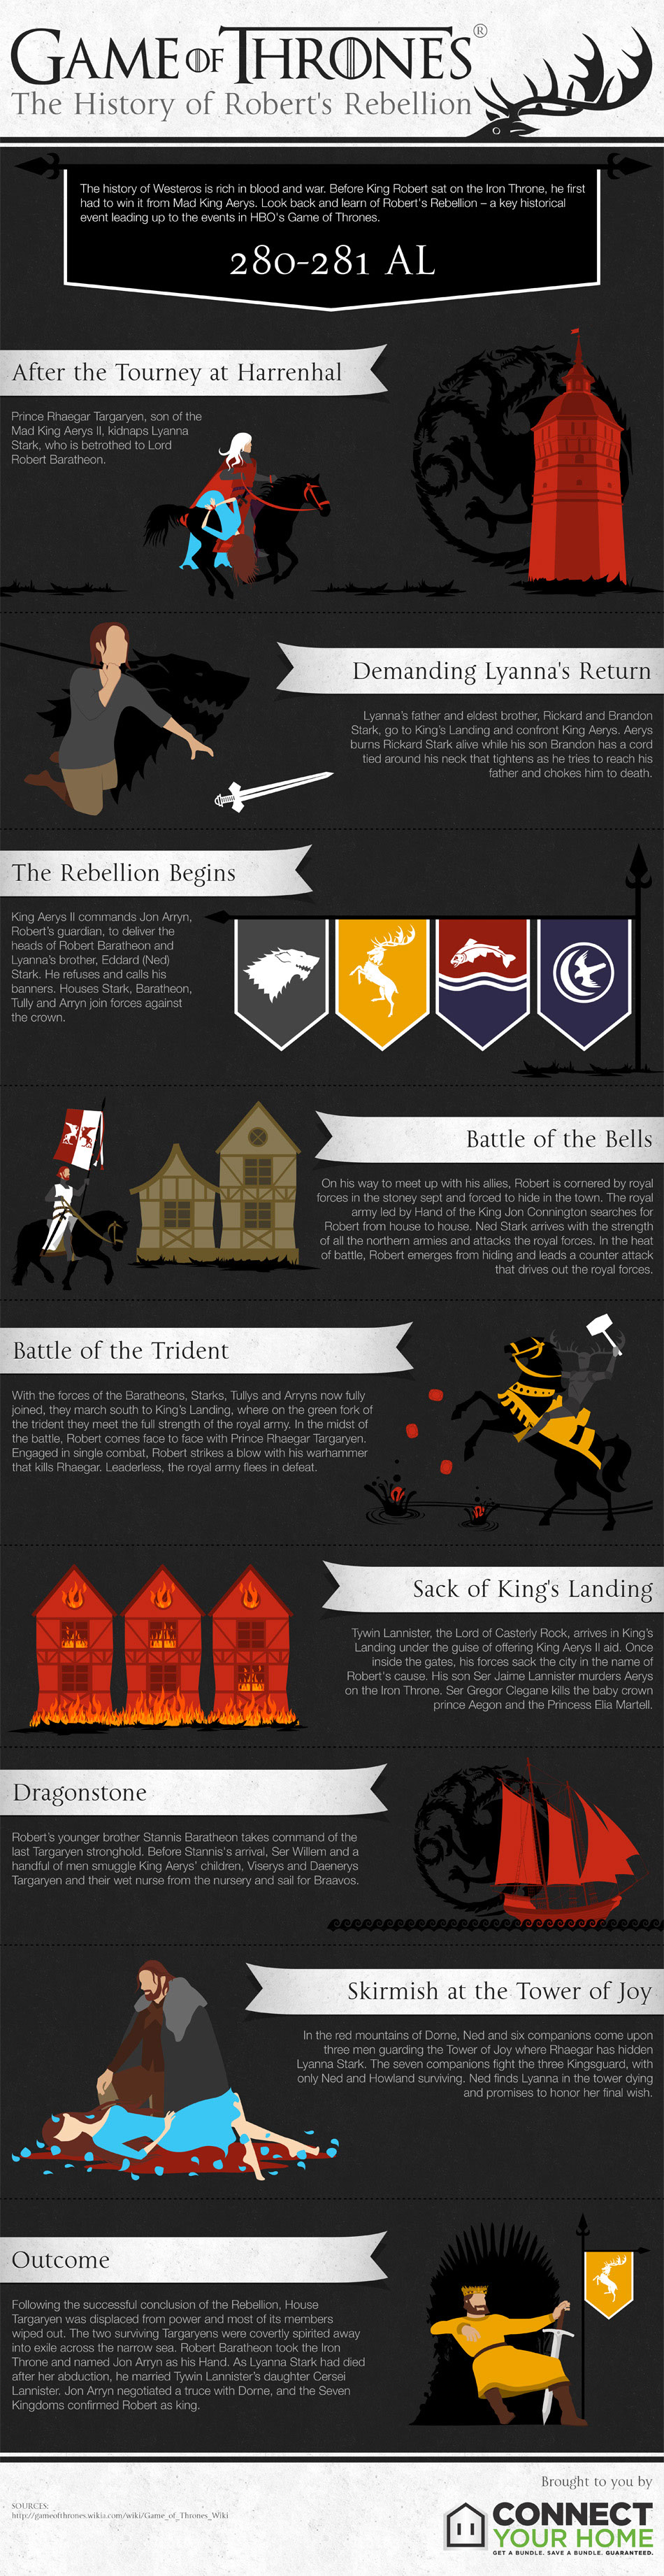 Game of Thrones Recap-Infographic